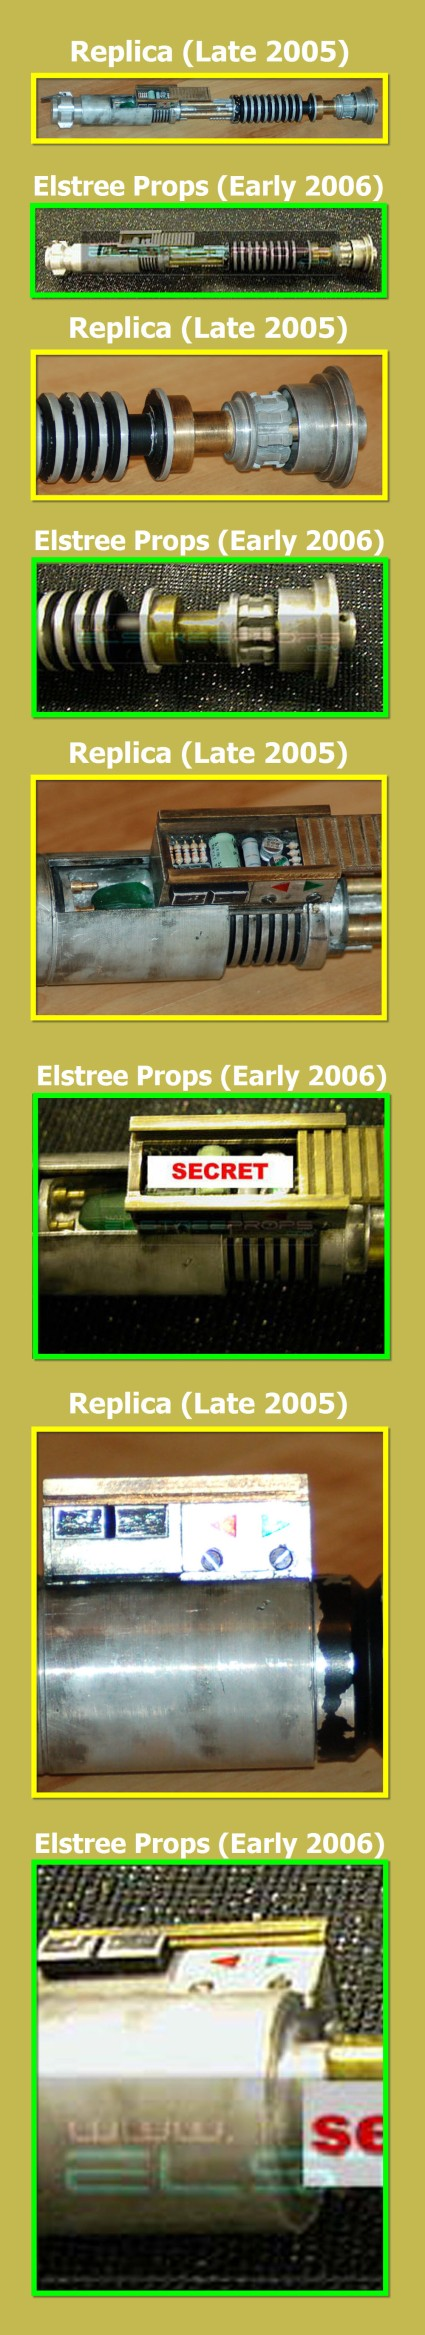 Elstree-Props-Return-of-the-Jedi-vs-Replica-Prop-Compilation-Marked-x1000 rev [x425]